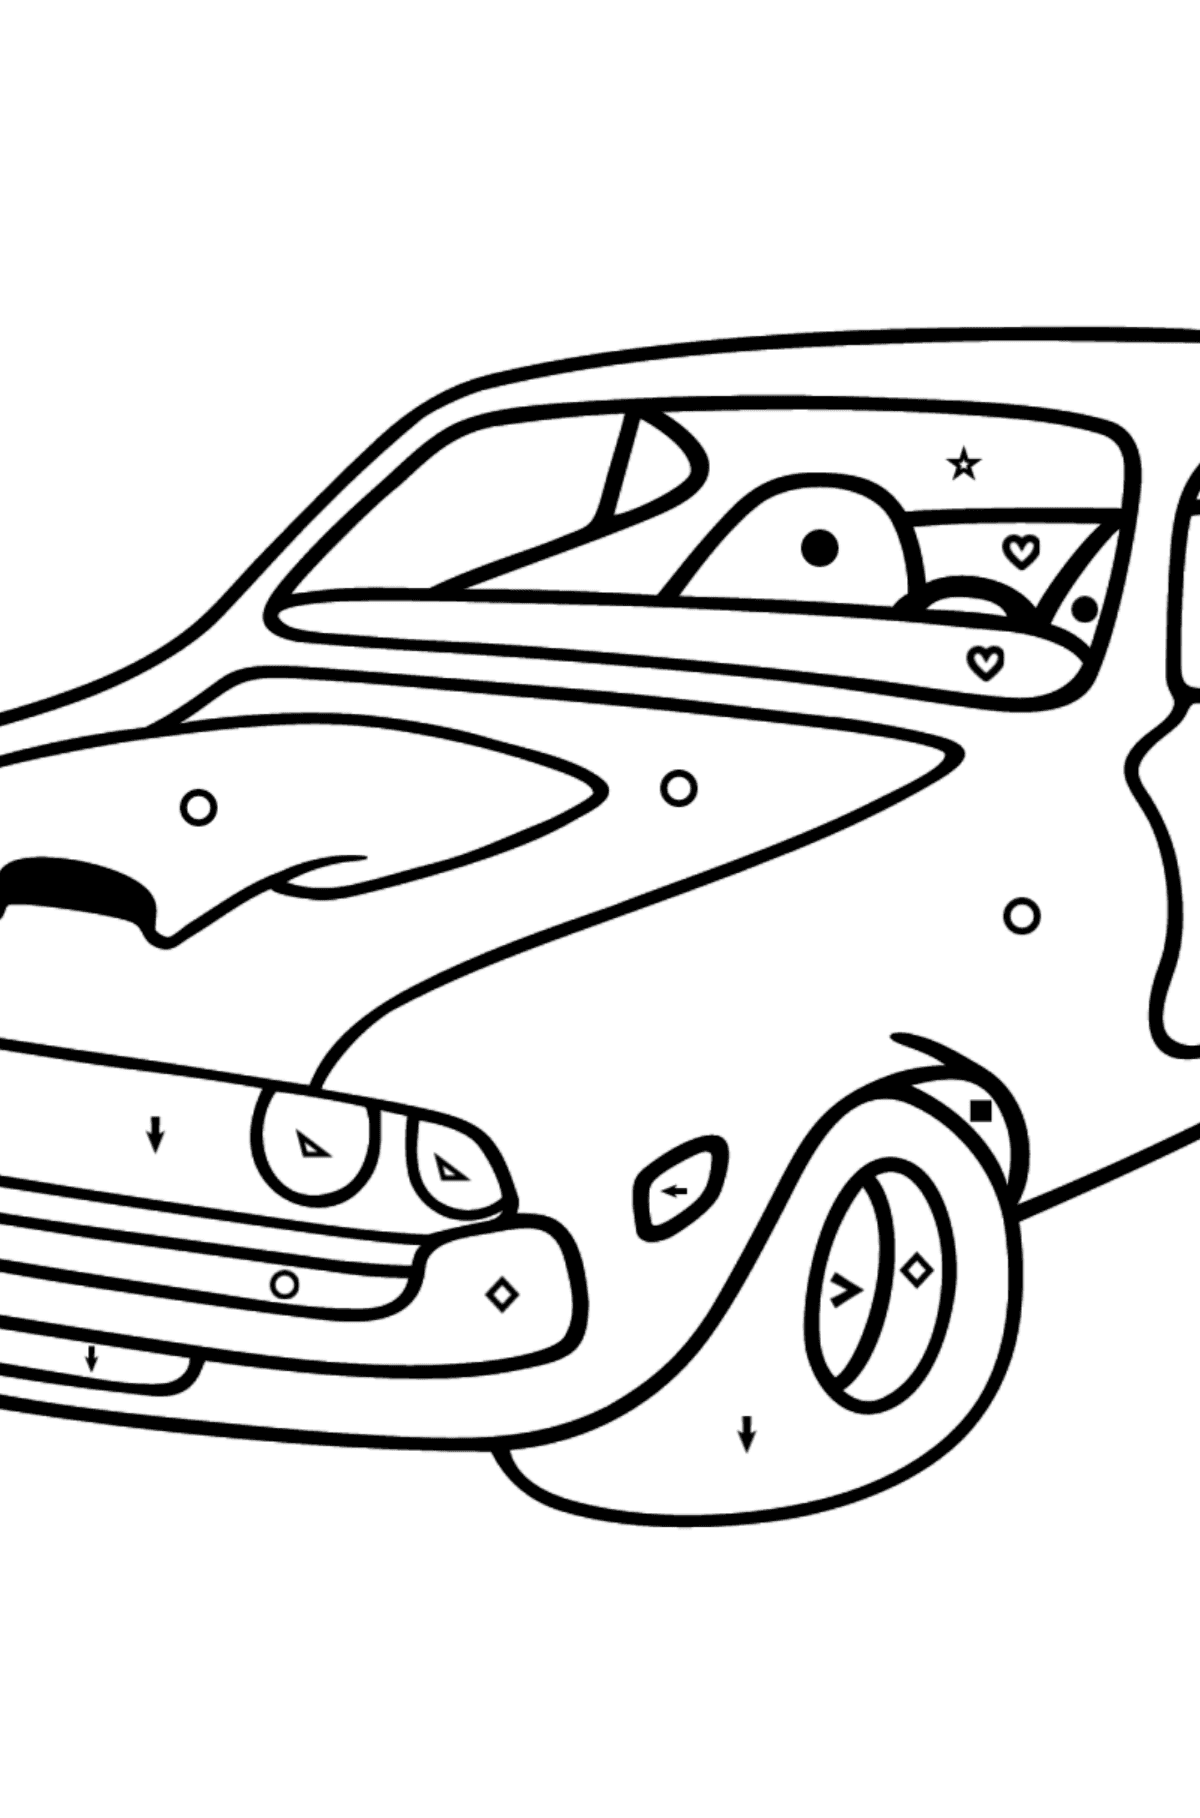 Chevrolet-Chevy Sports Car coloring page - Coloring by Symbols and Geometric Shapes for Kids